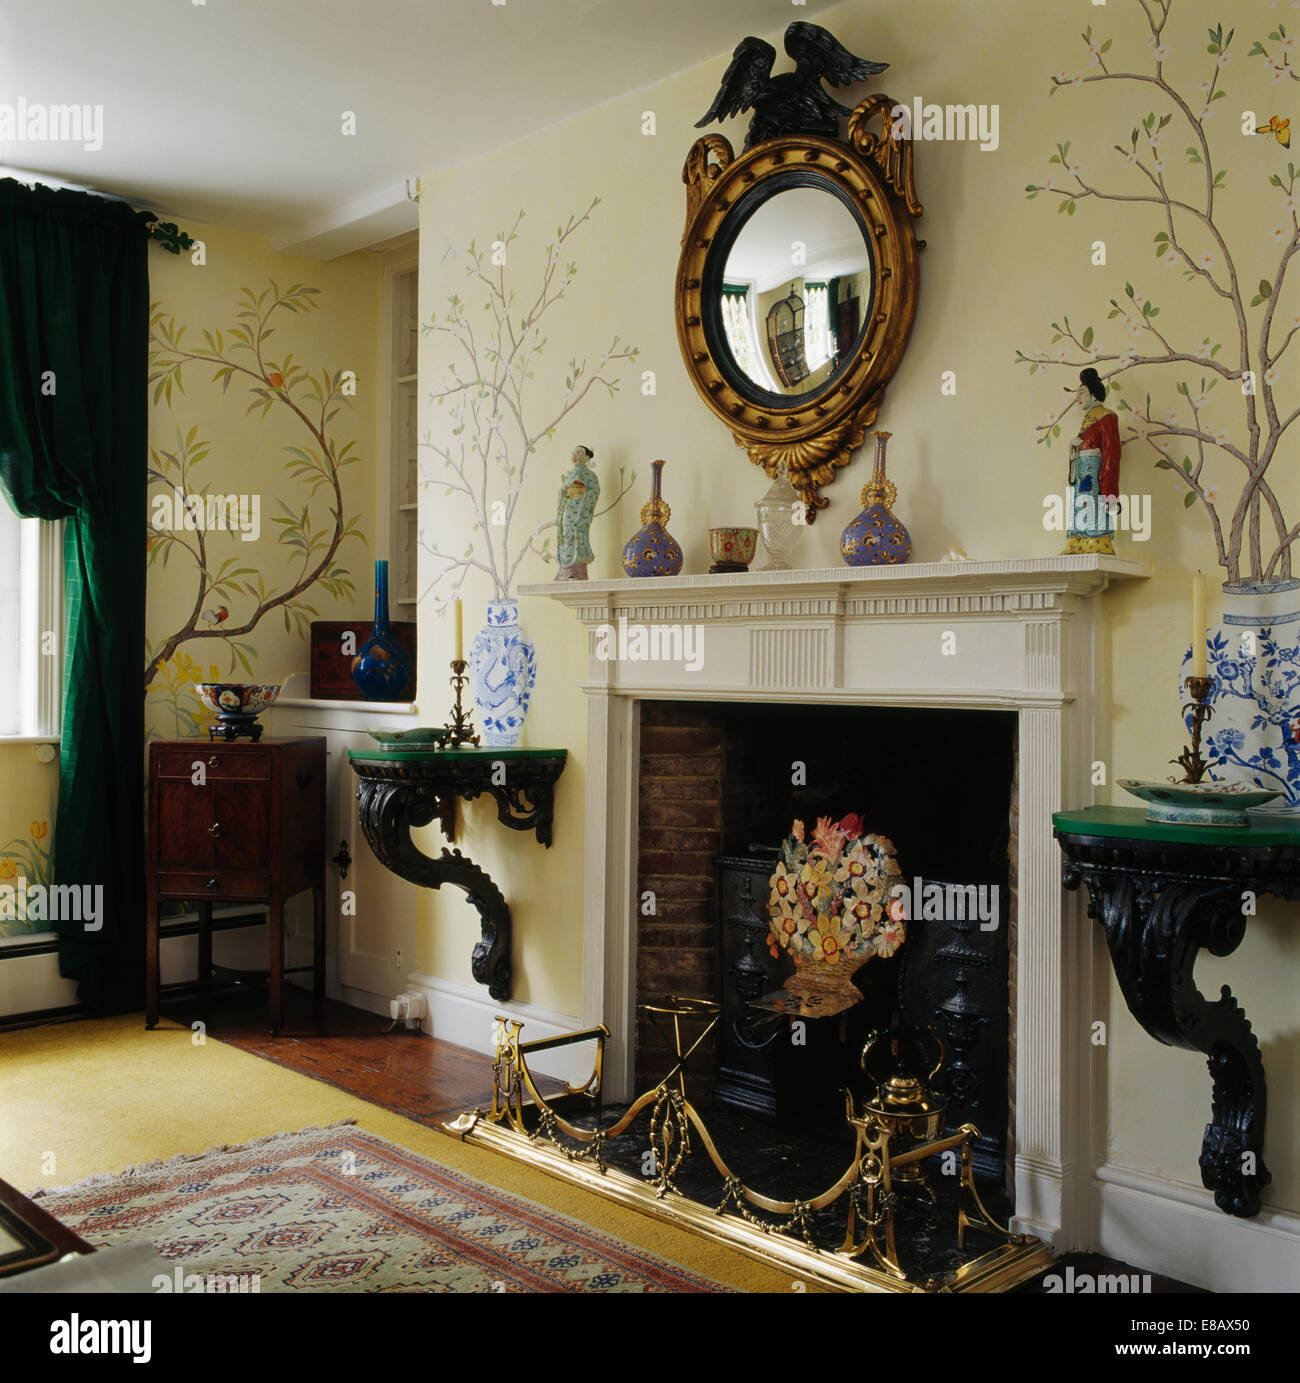 rococo mirror photos rococo mirror images alamy. Black Bedroom Furniture Sets. Home Design Ideas